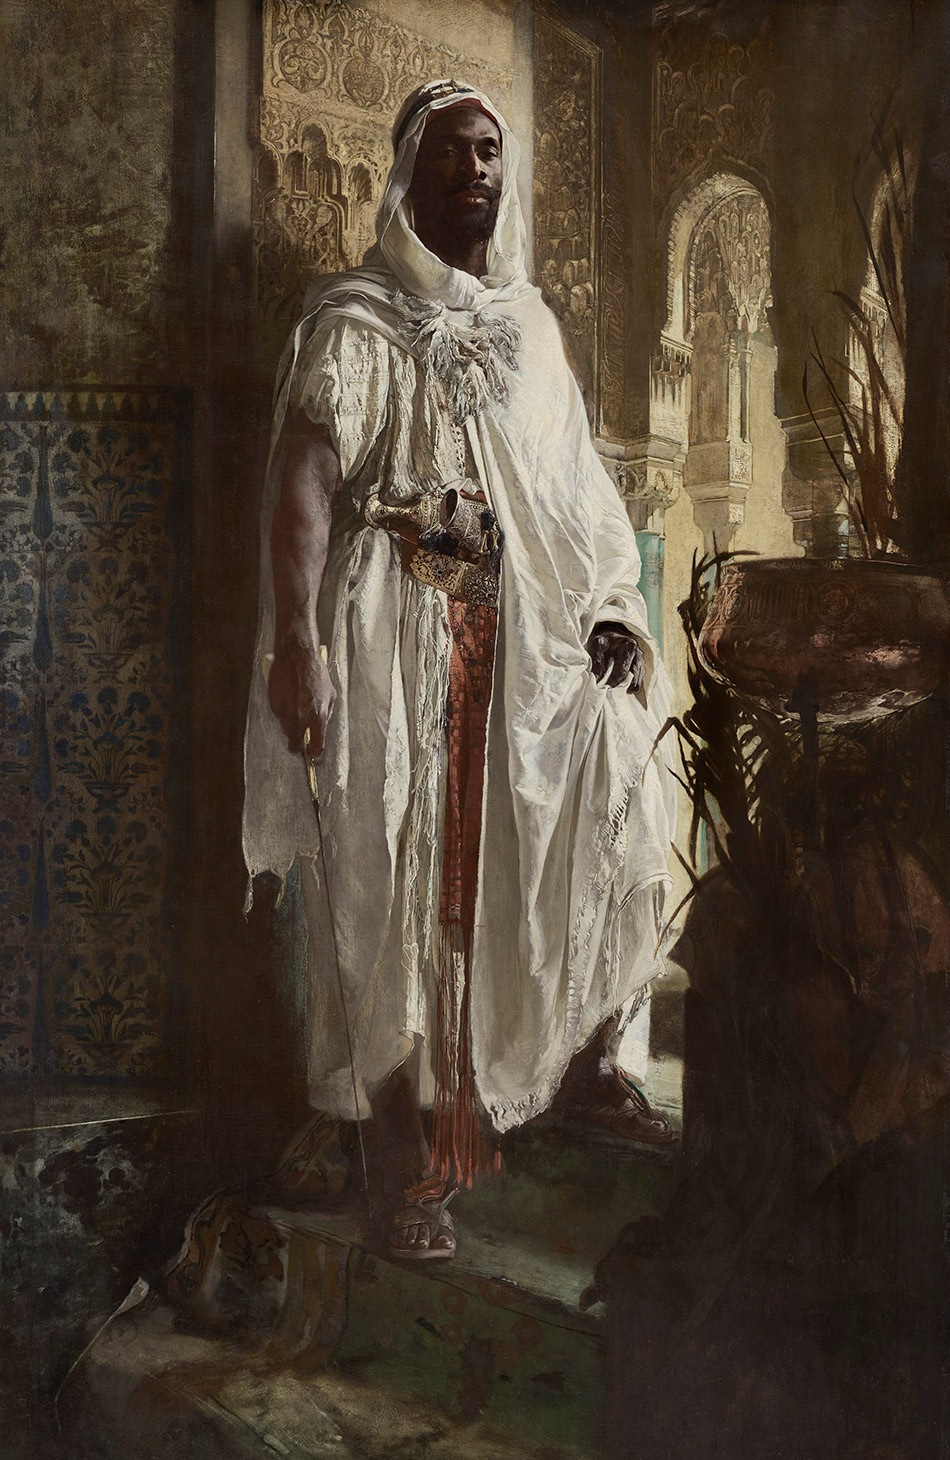 Eduard-Charlemont-The-Moorish-Chief-_Philadelphia-Museum-of-Art_w